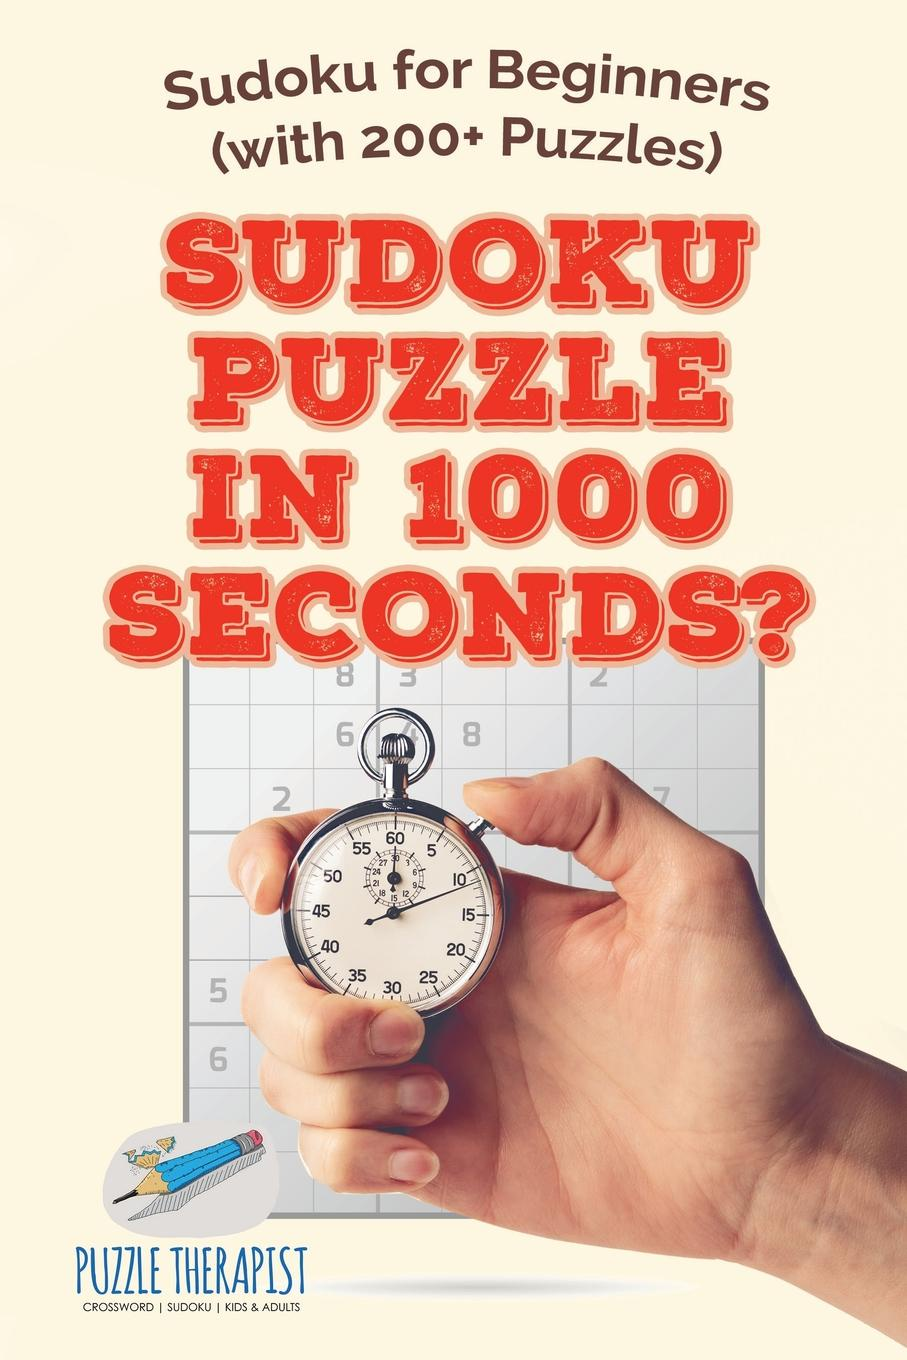 Puzzle Therapist Sudoku Puzzle in 1000 Seconds? . Sudoku for Beginners (with 200+ Puzzles) puzzle therapist one a day sudoku for the utterly obsessed large print puzzles for adults